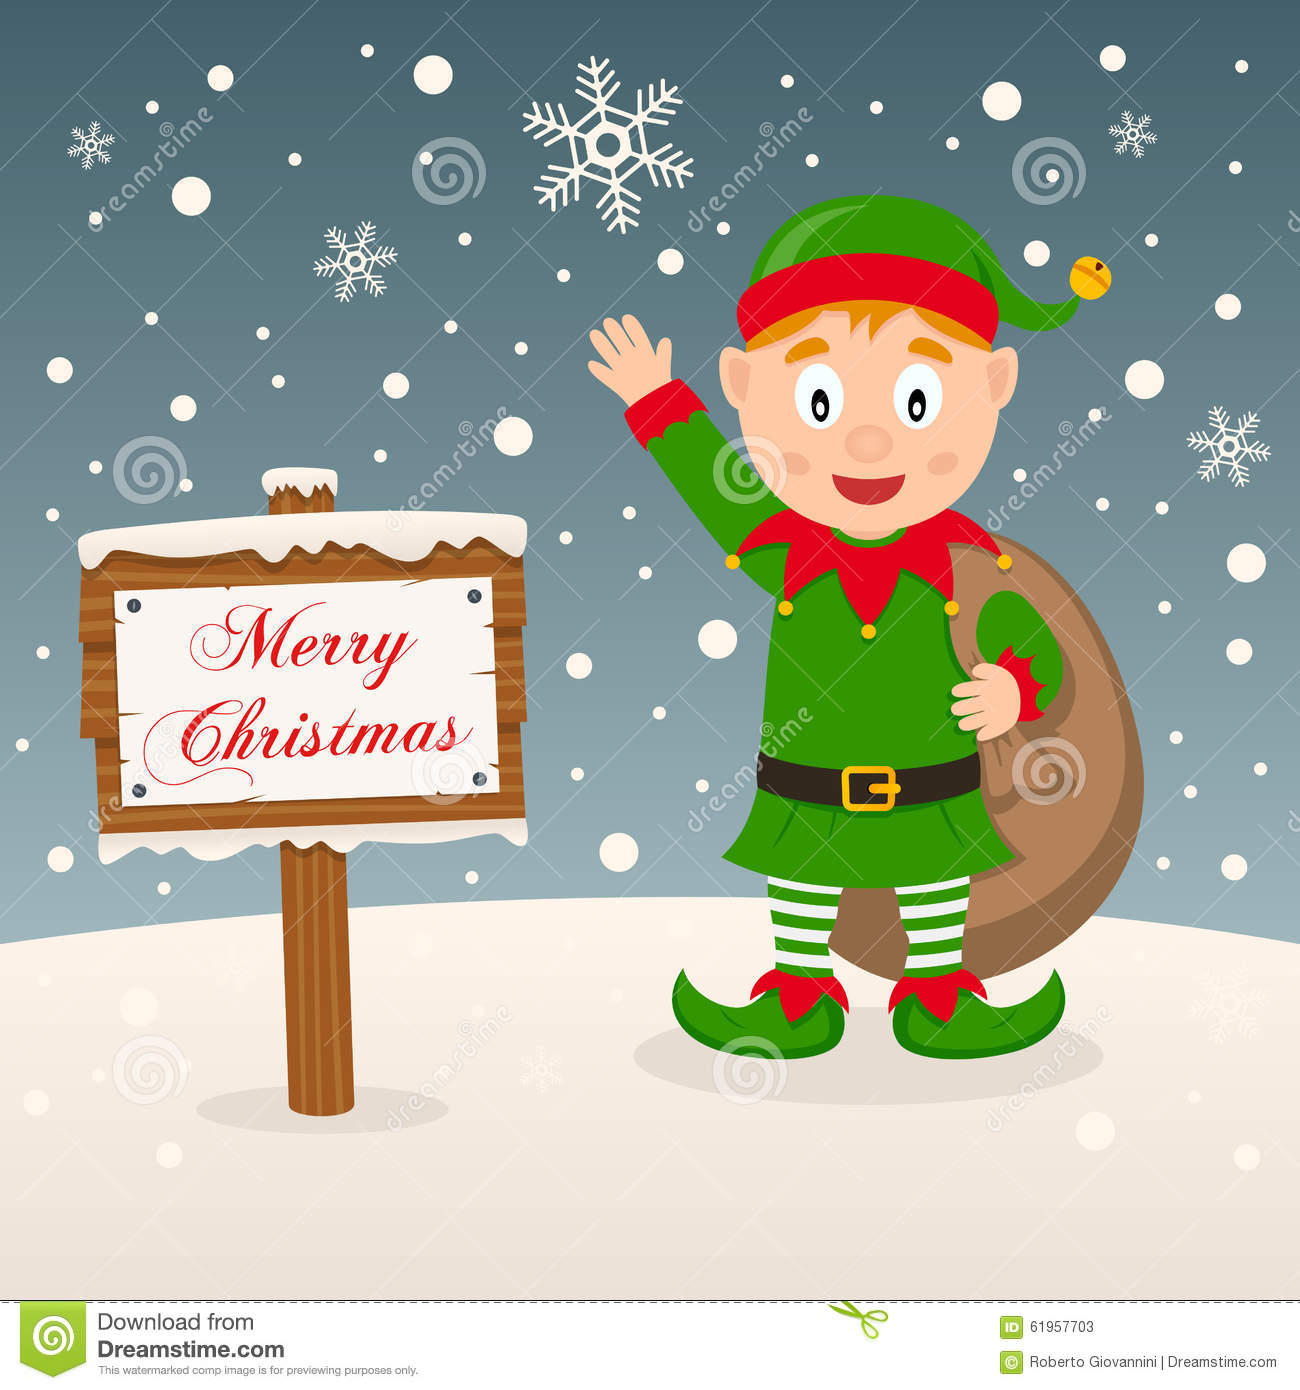 Green Elf With Merry Christmas Sign Stock Vector - Image: 61957703